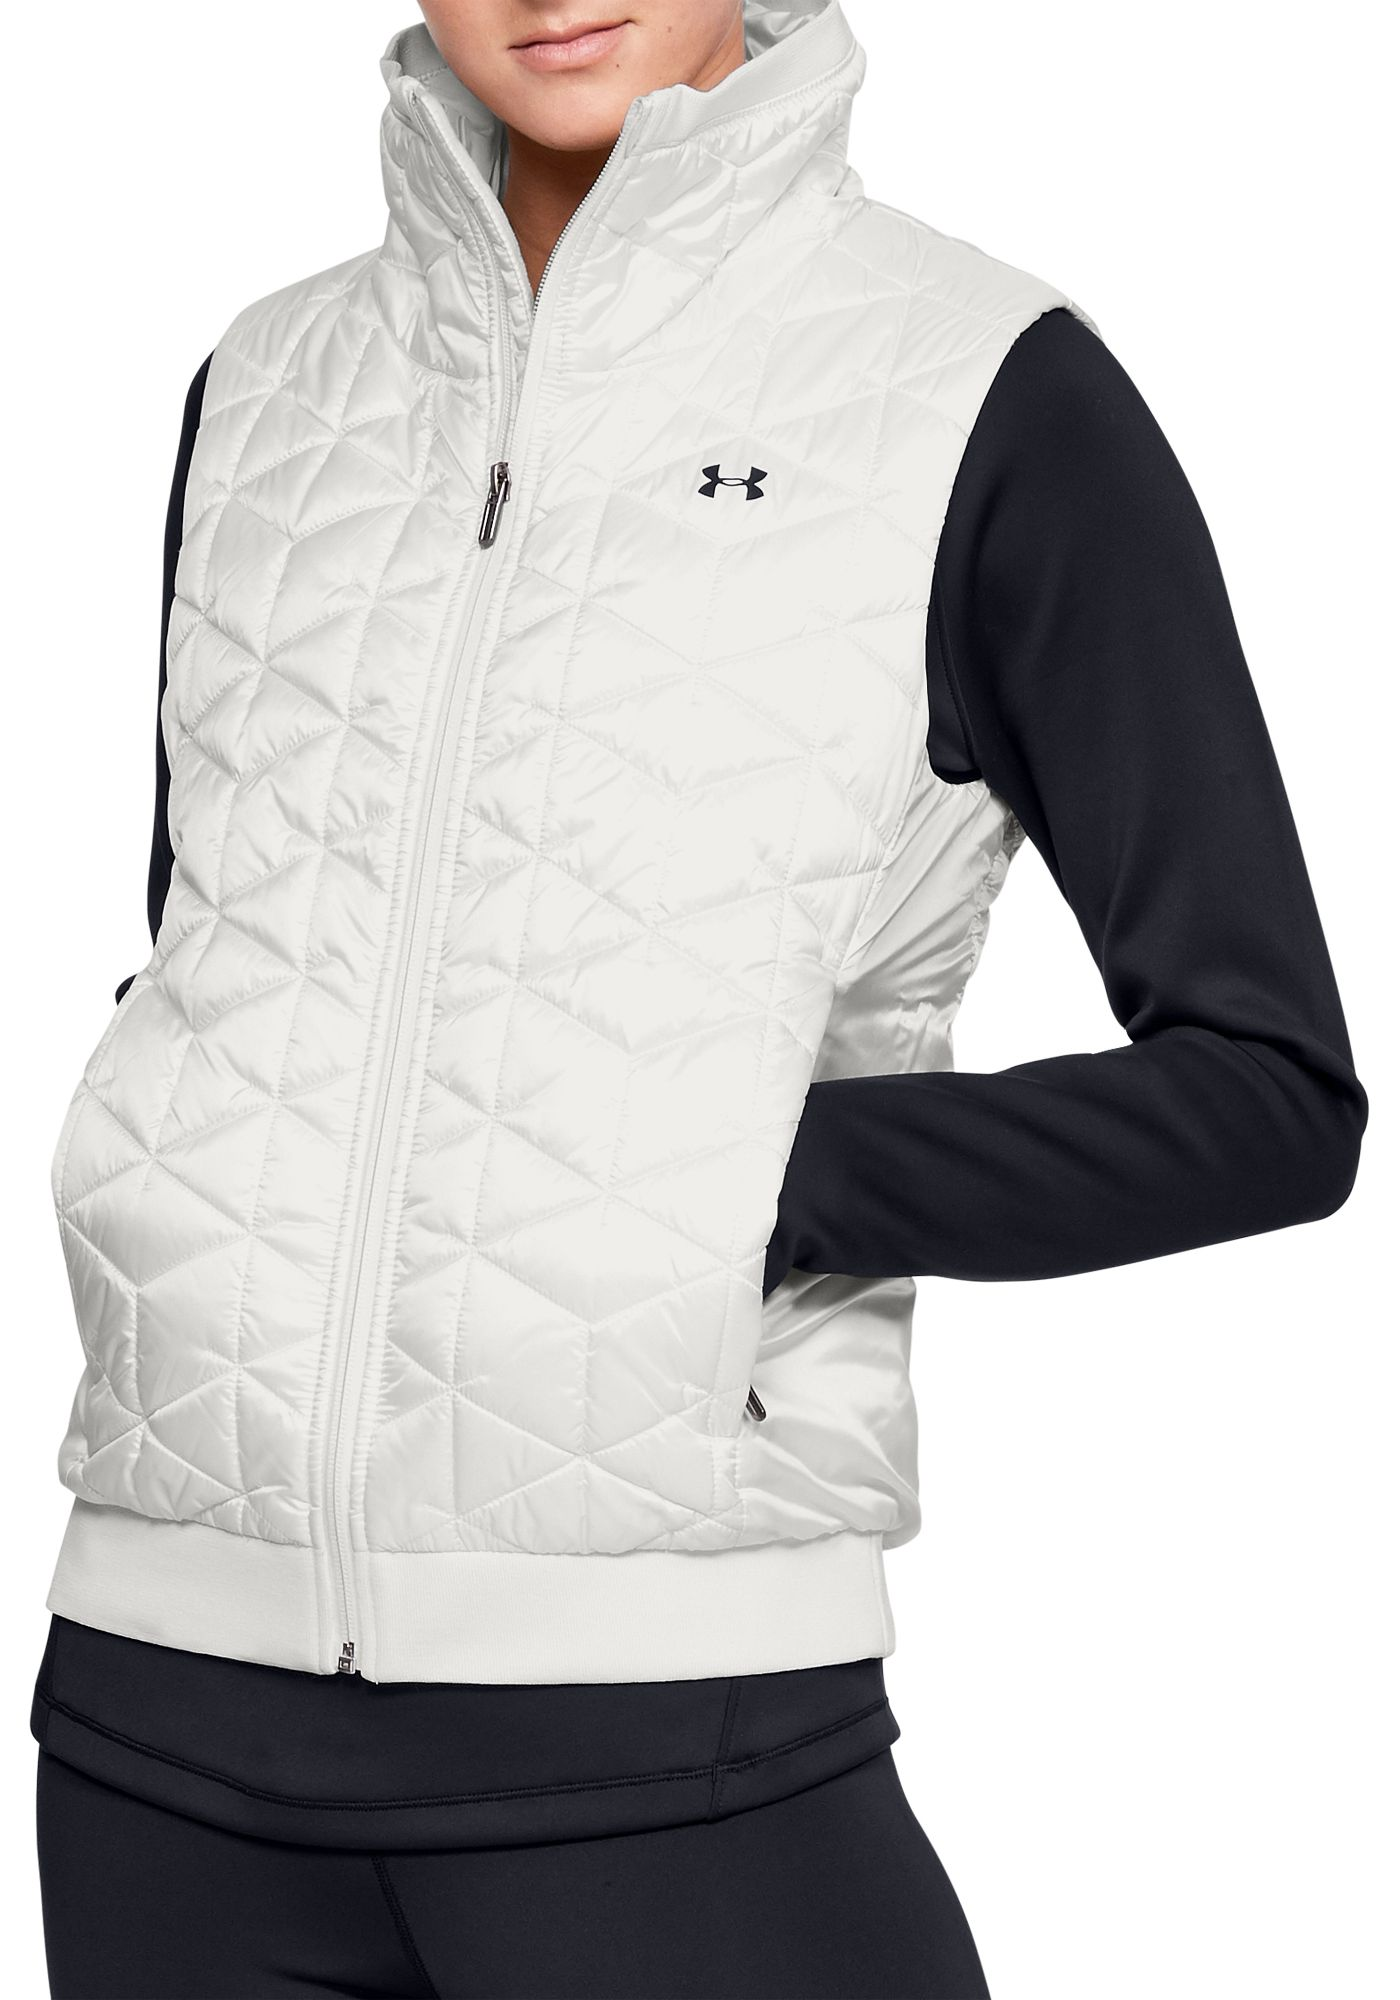 Under Armour Women's ColdGear Reactor Performance Vest